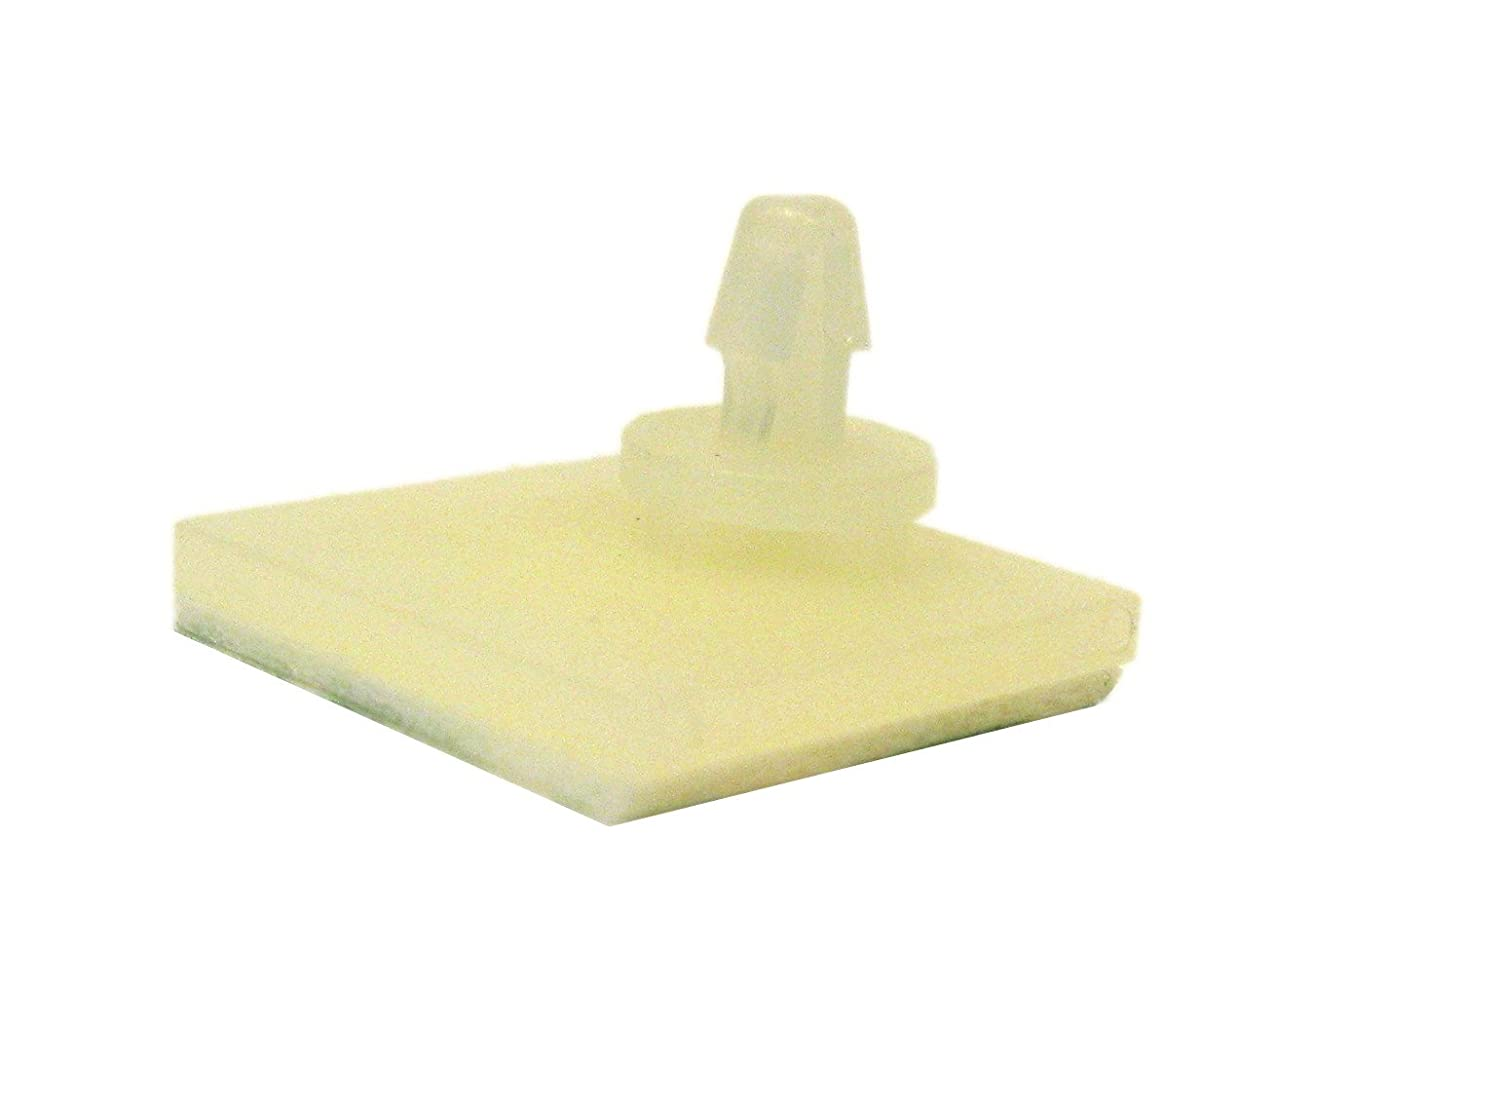 Sa180 Adhesive Standoffs 24 Pack 0180 Height Offset 06x06 Circuit Board Support Pcb Holder Standoff Nylon Spacers Plastic Base Fits 0125 Hole Industrial Scientific